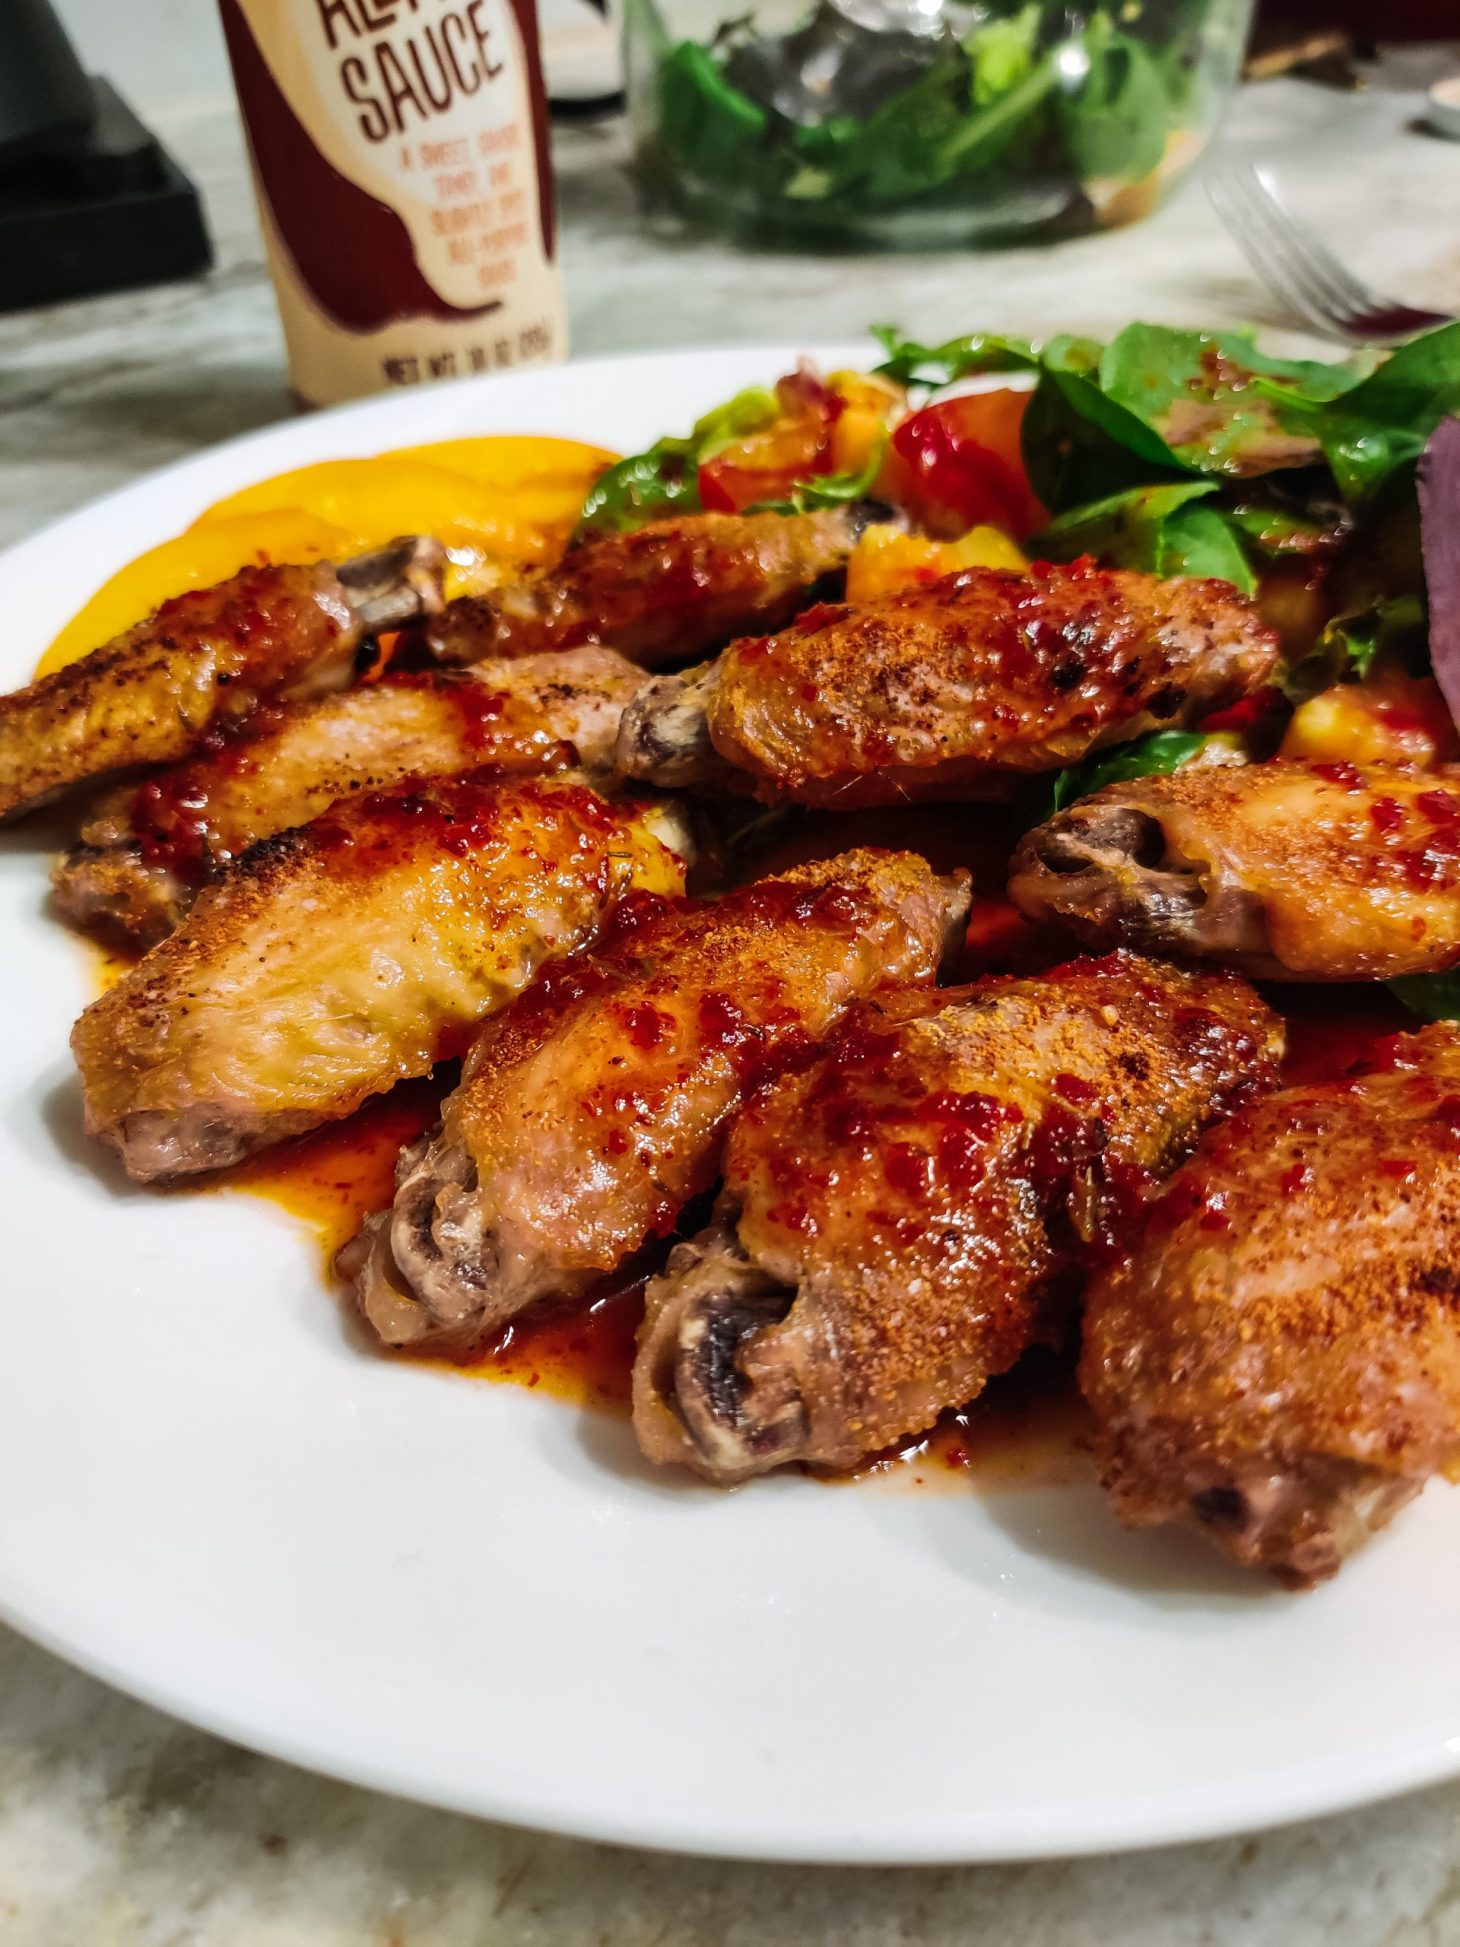 A white plate on a marble countertop with crispy chicken wings and salad drenched in Trader Joe's Honey Aleppo Sauce. Part of the sauce bottle and a big clear, glass bowl of salad are visible in the background.